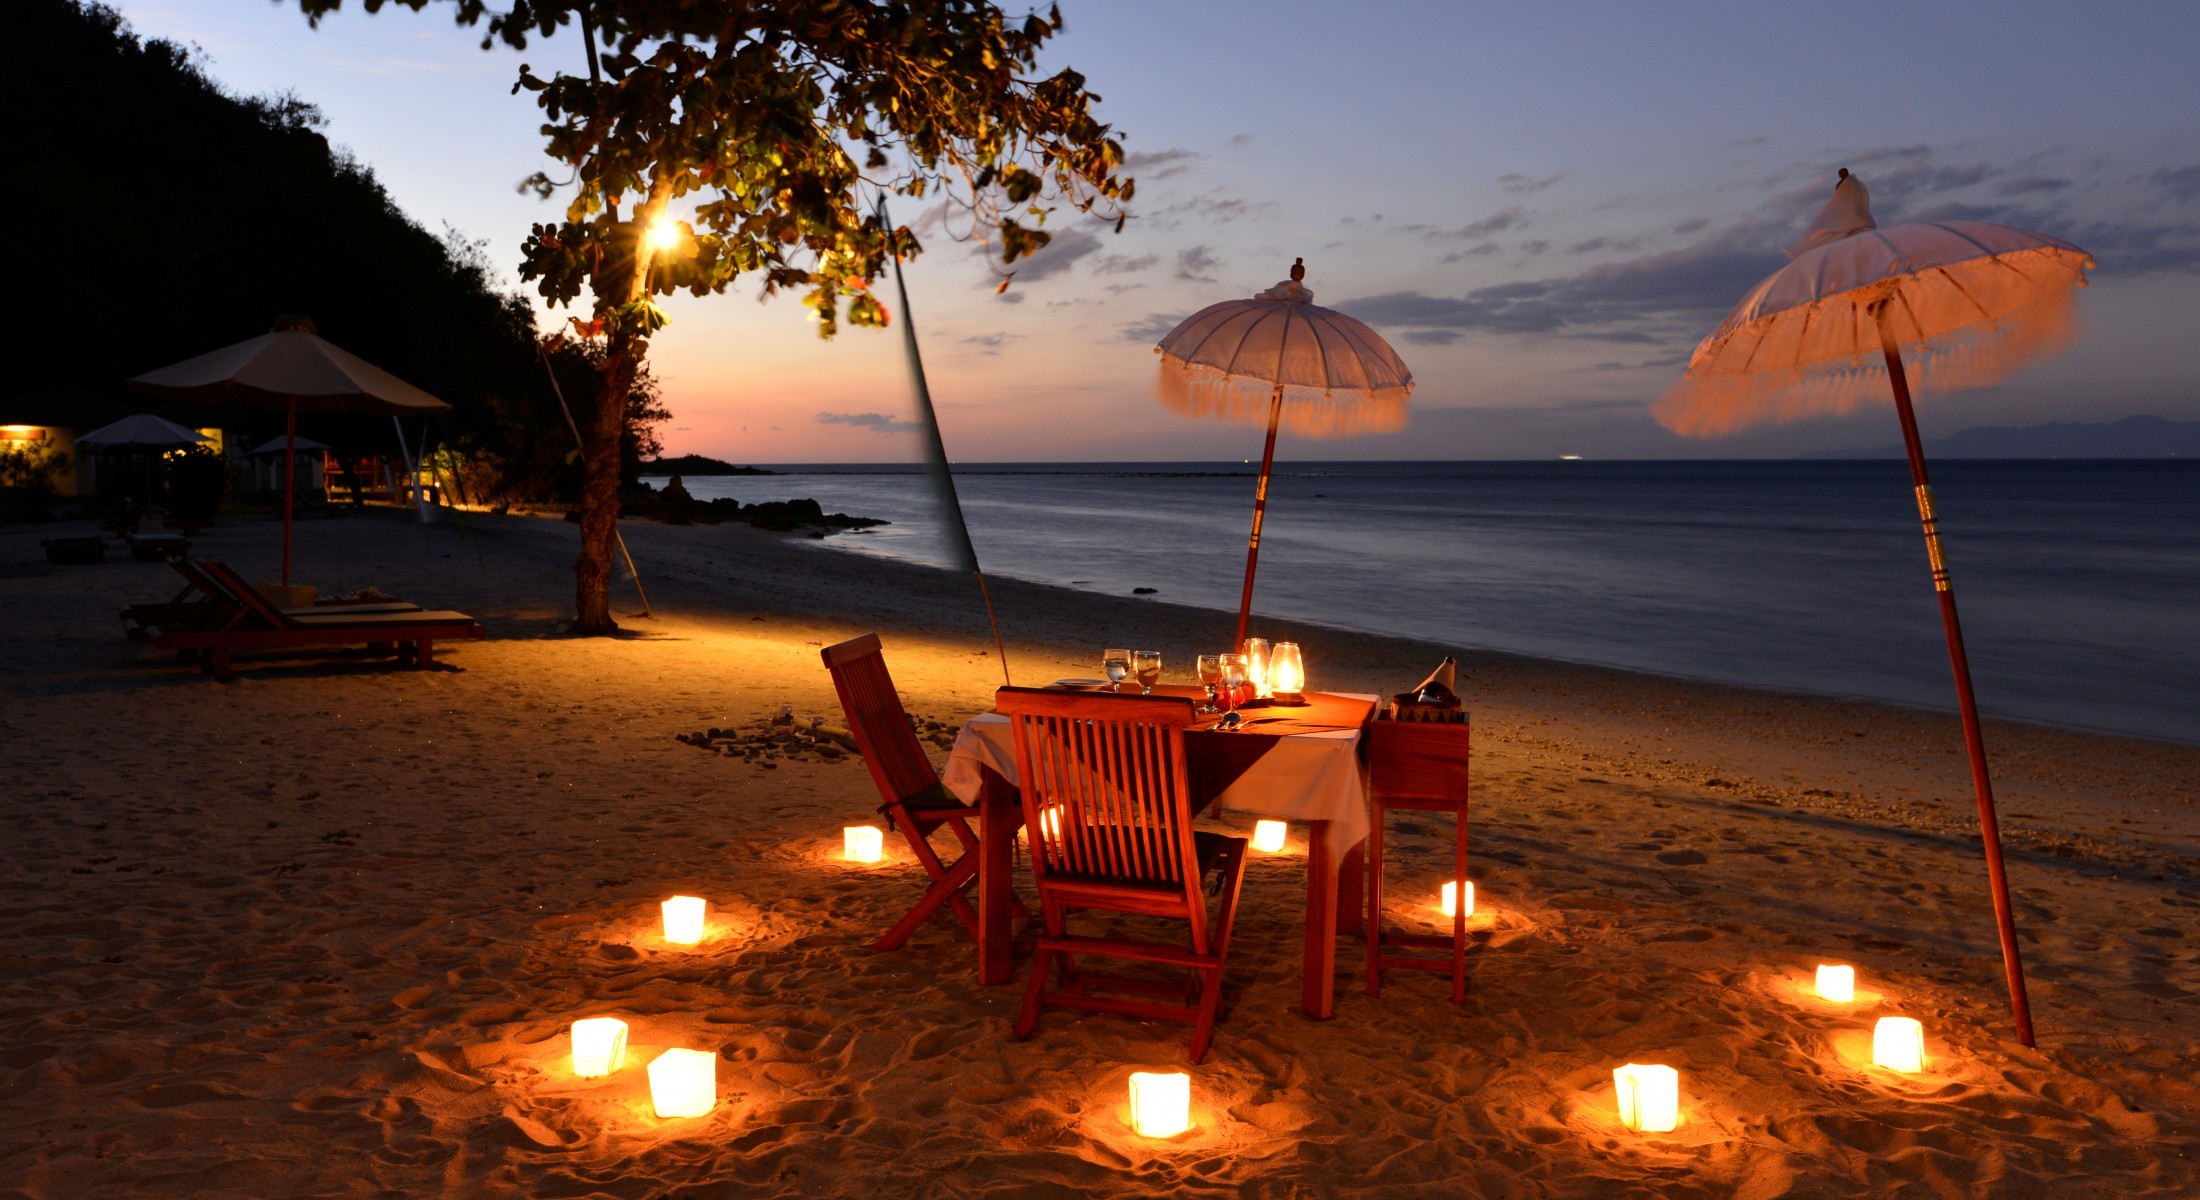 Candle Light Dinner Setup by the beach